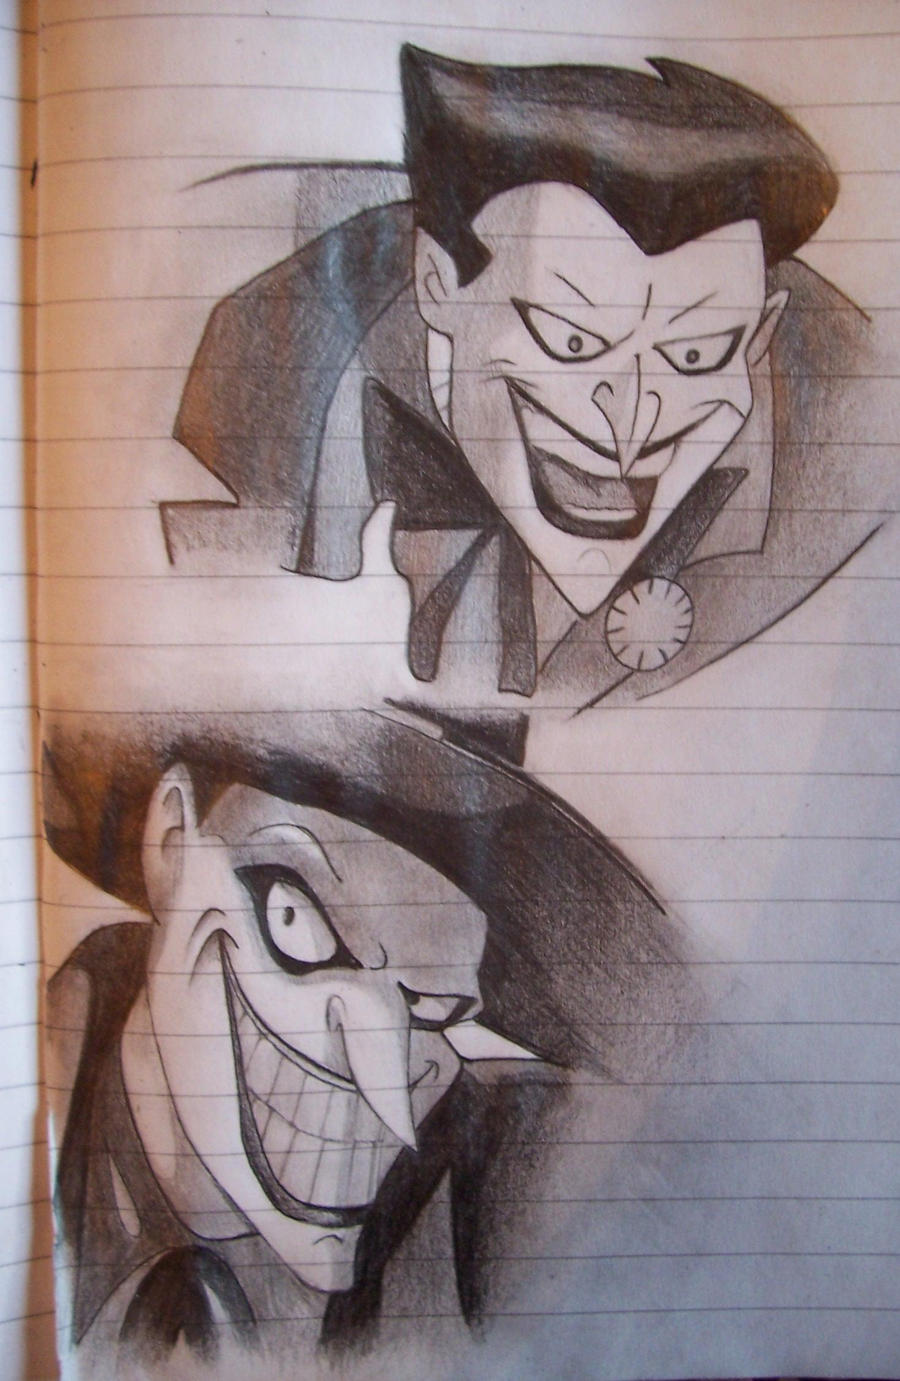 Joker cartoon by Astartte on DeviantArt